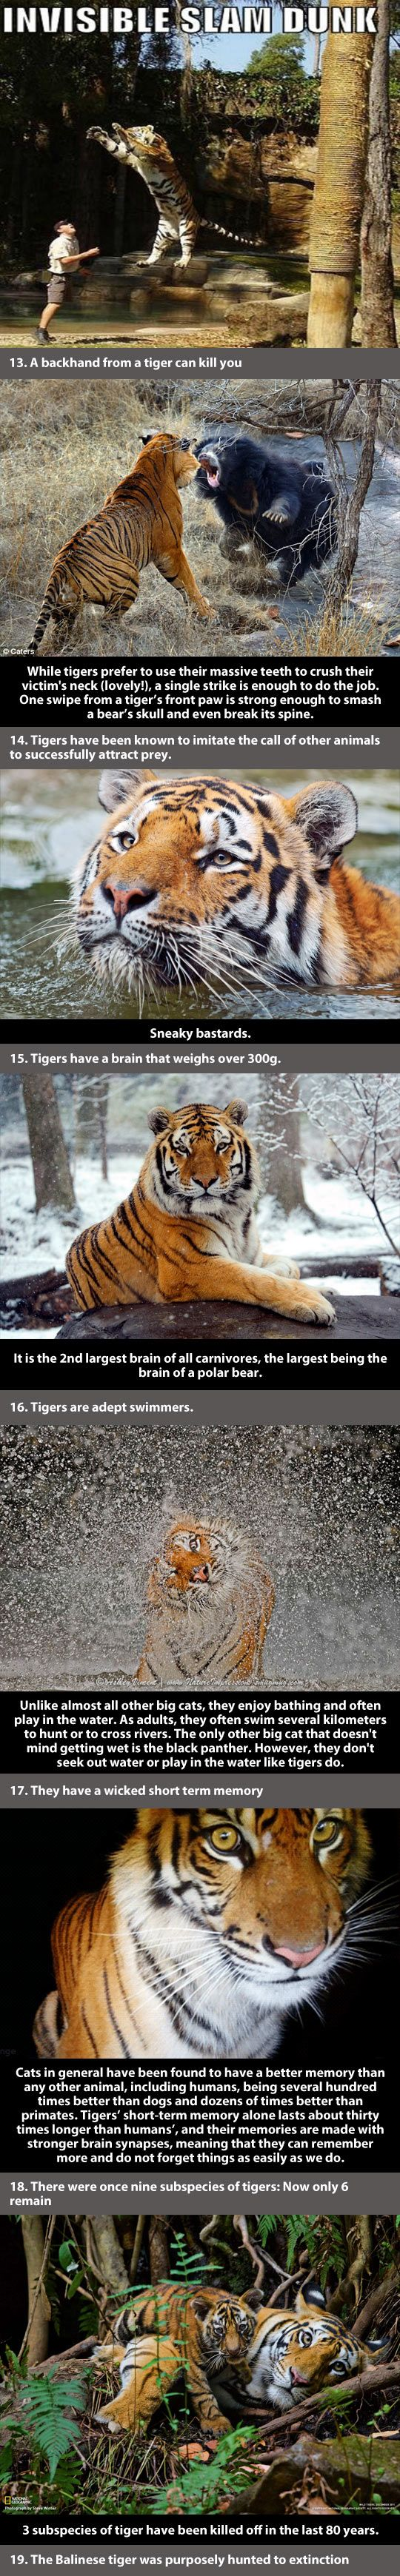 Badass facts about a tiger... - The Meta Picture